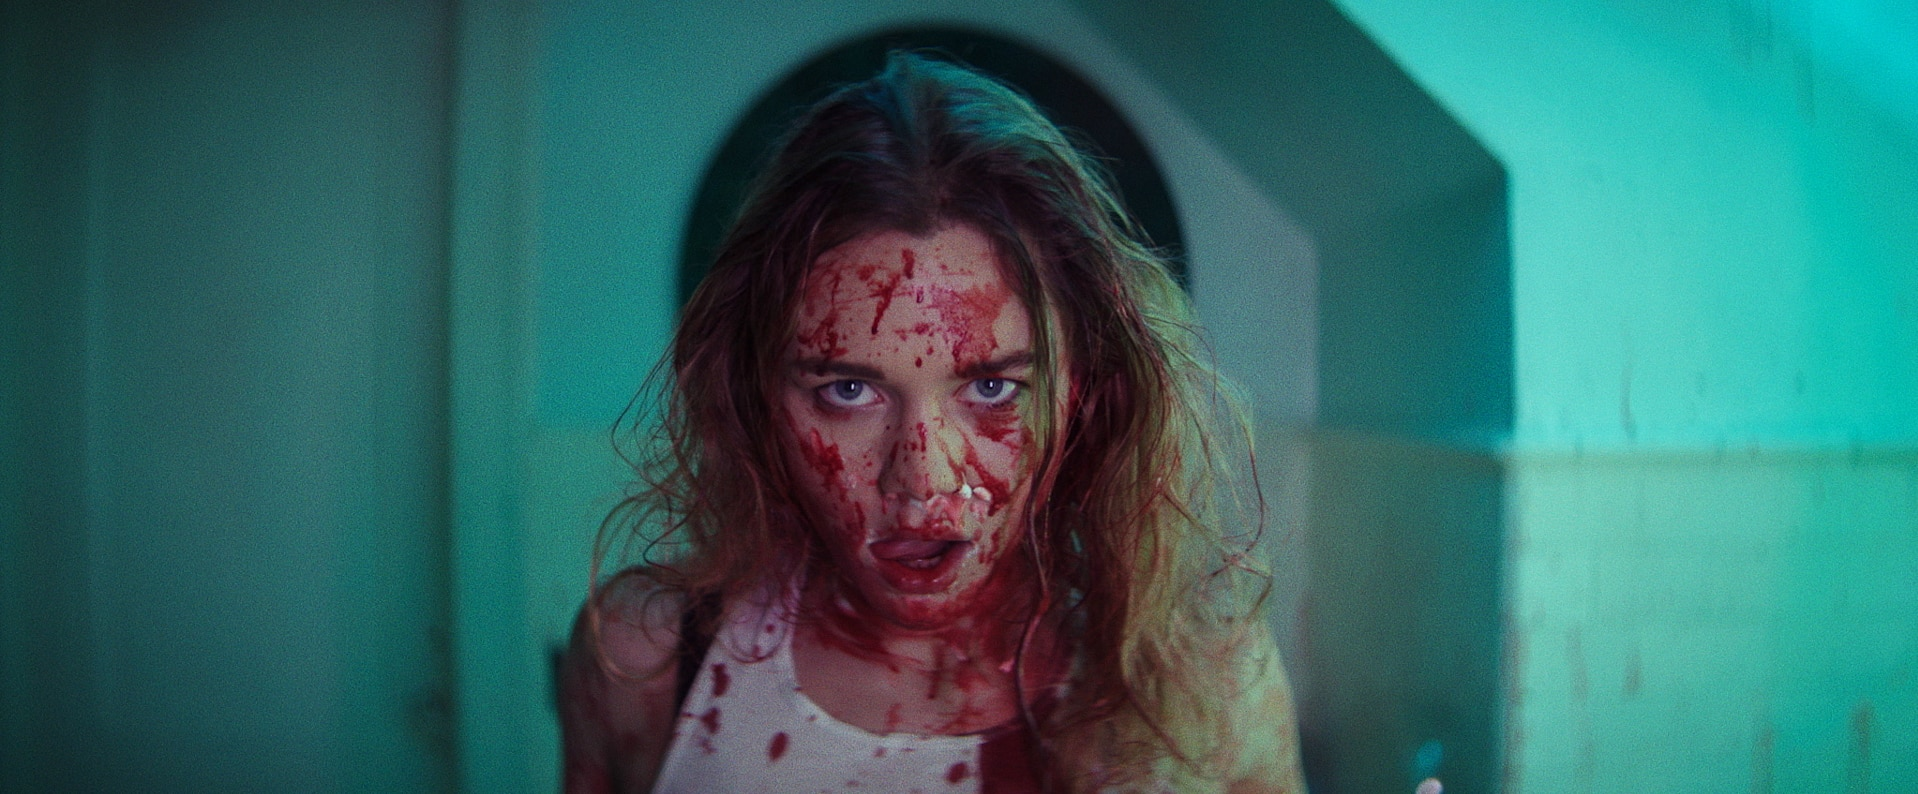 Braid 2 - FrightFest 2018: 19th Year's Line-Up Revealed With 20 World Premieres!